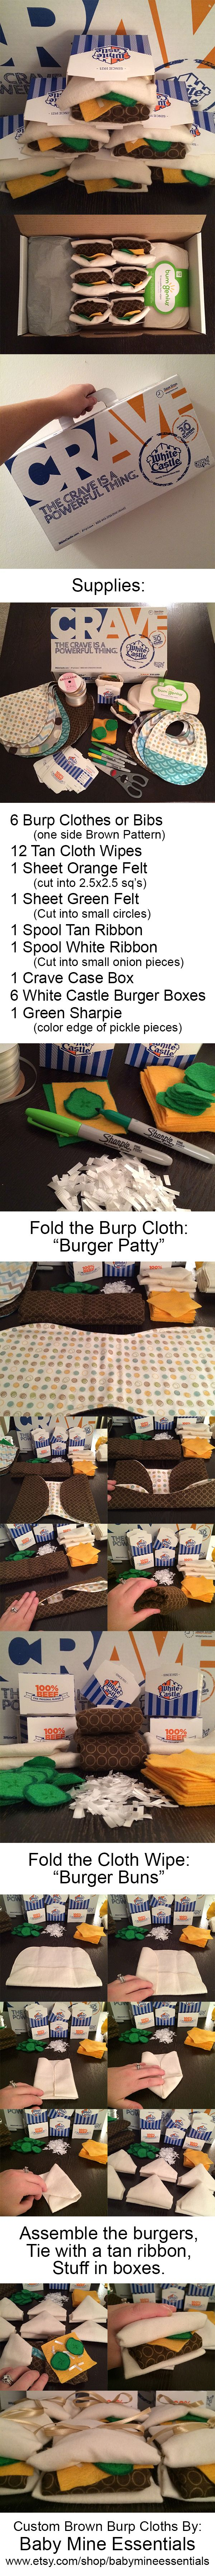 Baby Shower Boy Gift Idea: Burp Cloth White Castle Burgers (Sliders.) I made these little burgers with custom burp cloths from: Baby Mine Essentials (Etsy Shop) (https://www.etsy.com/shop/babymineessentials)